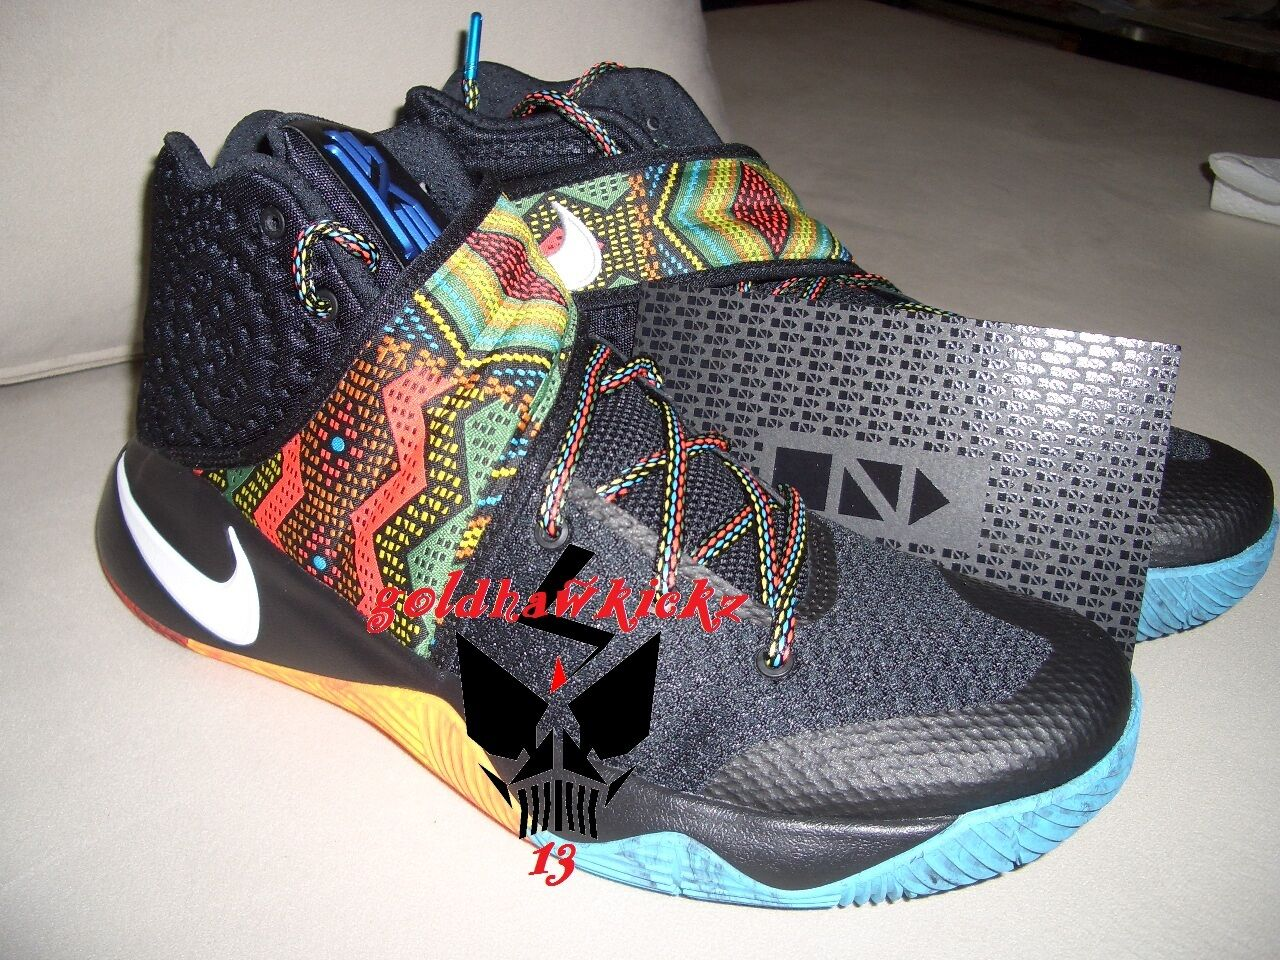 Nike KYRIE 2 BHM Black History Month Limited Edition black multicolor uncle drew